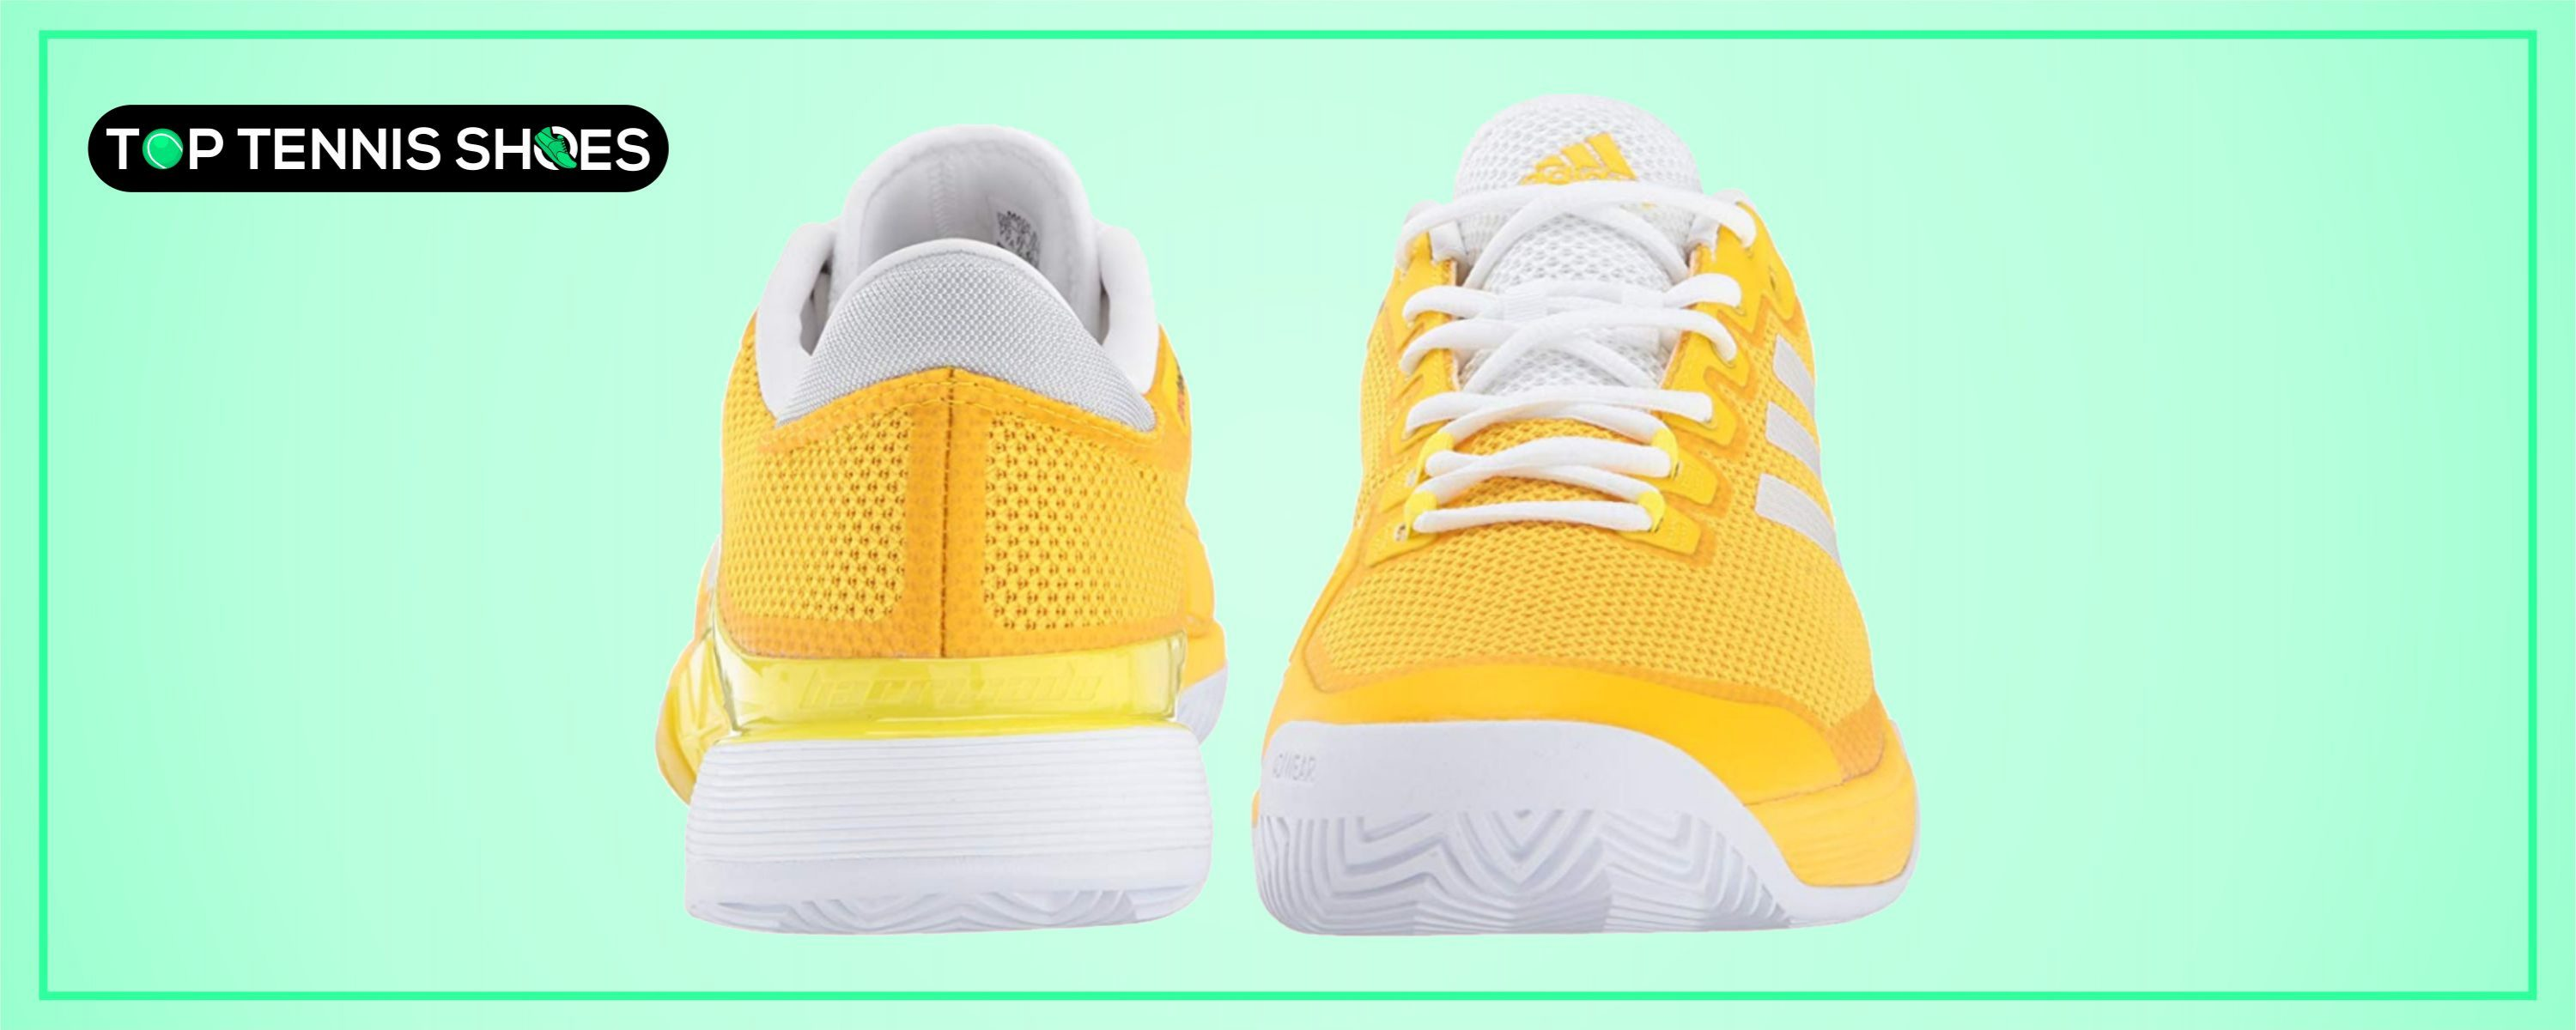 Comfort Tennis Shoes for Sliding